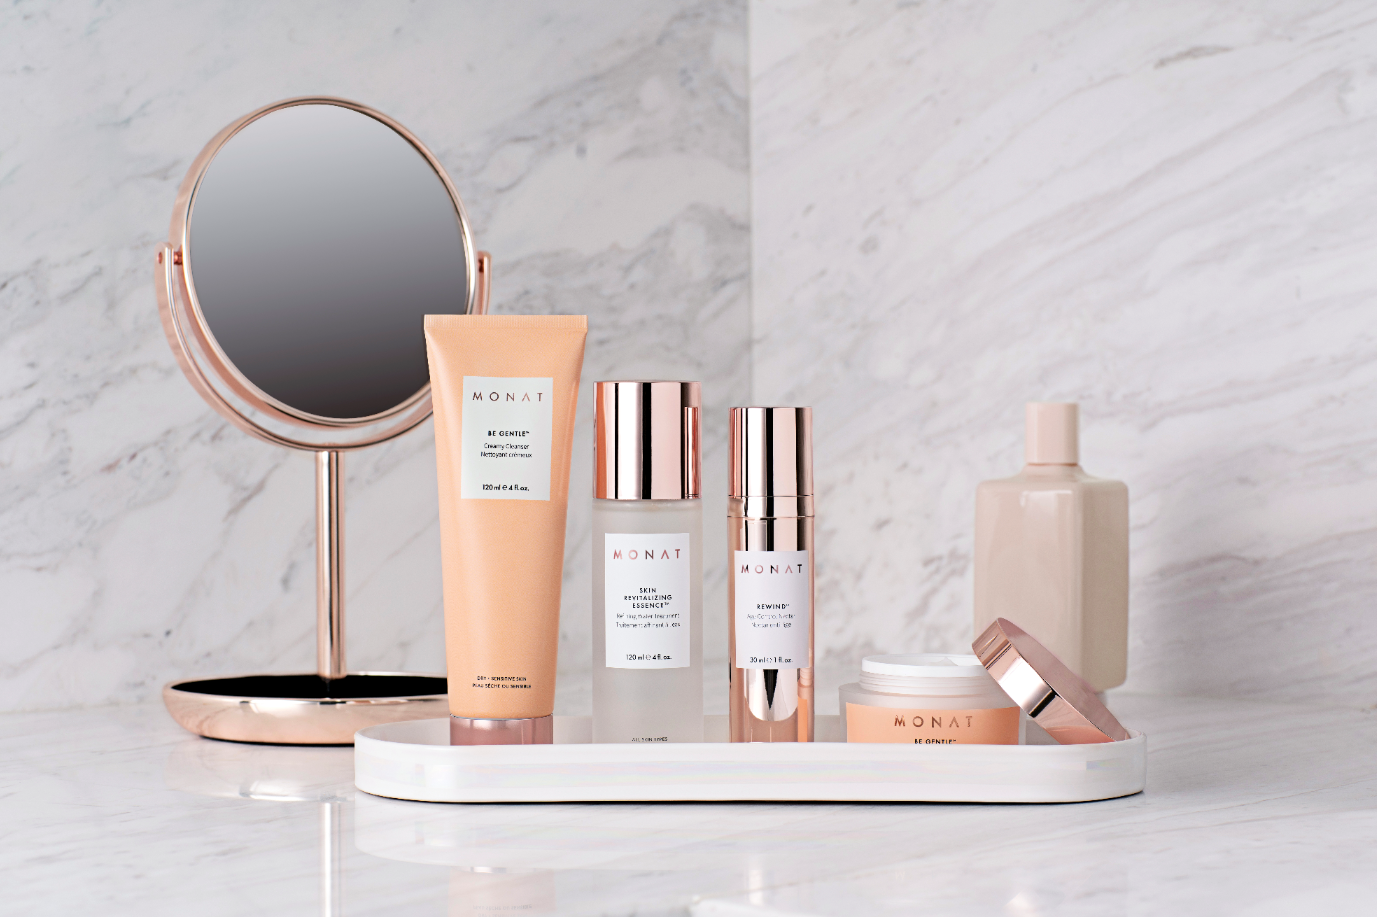 Be Gentle™ Routine in 2020 Skin care, Skin care tips